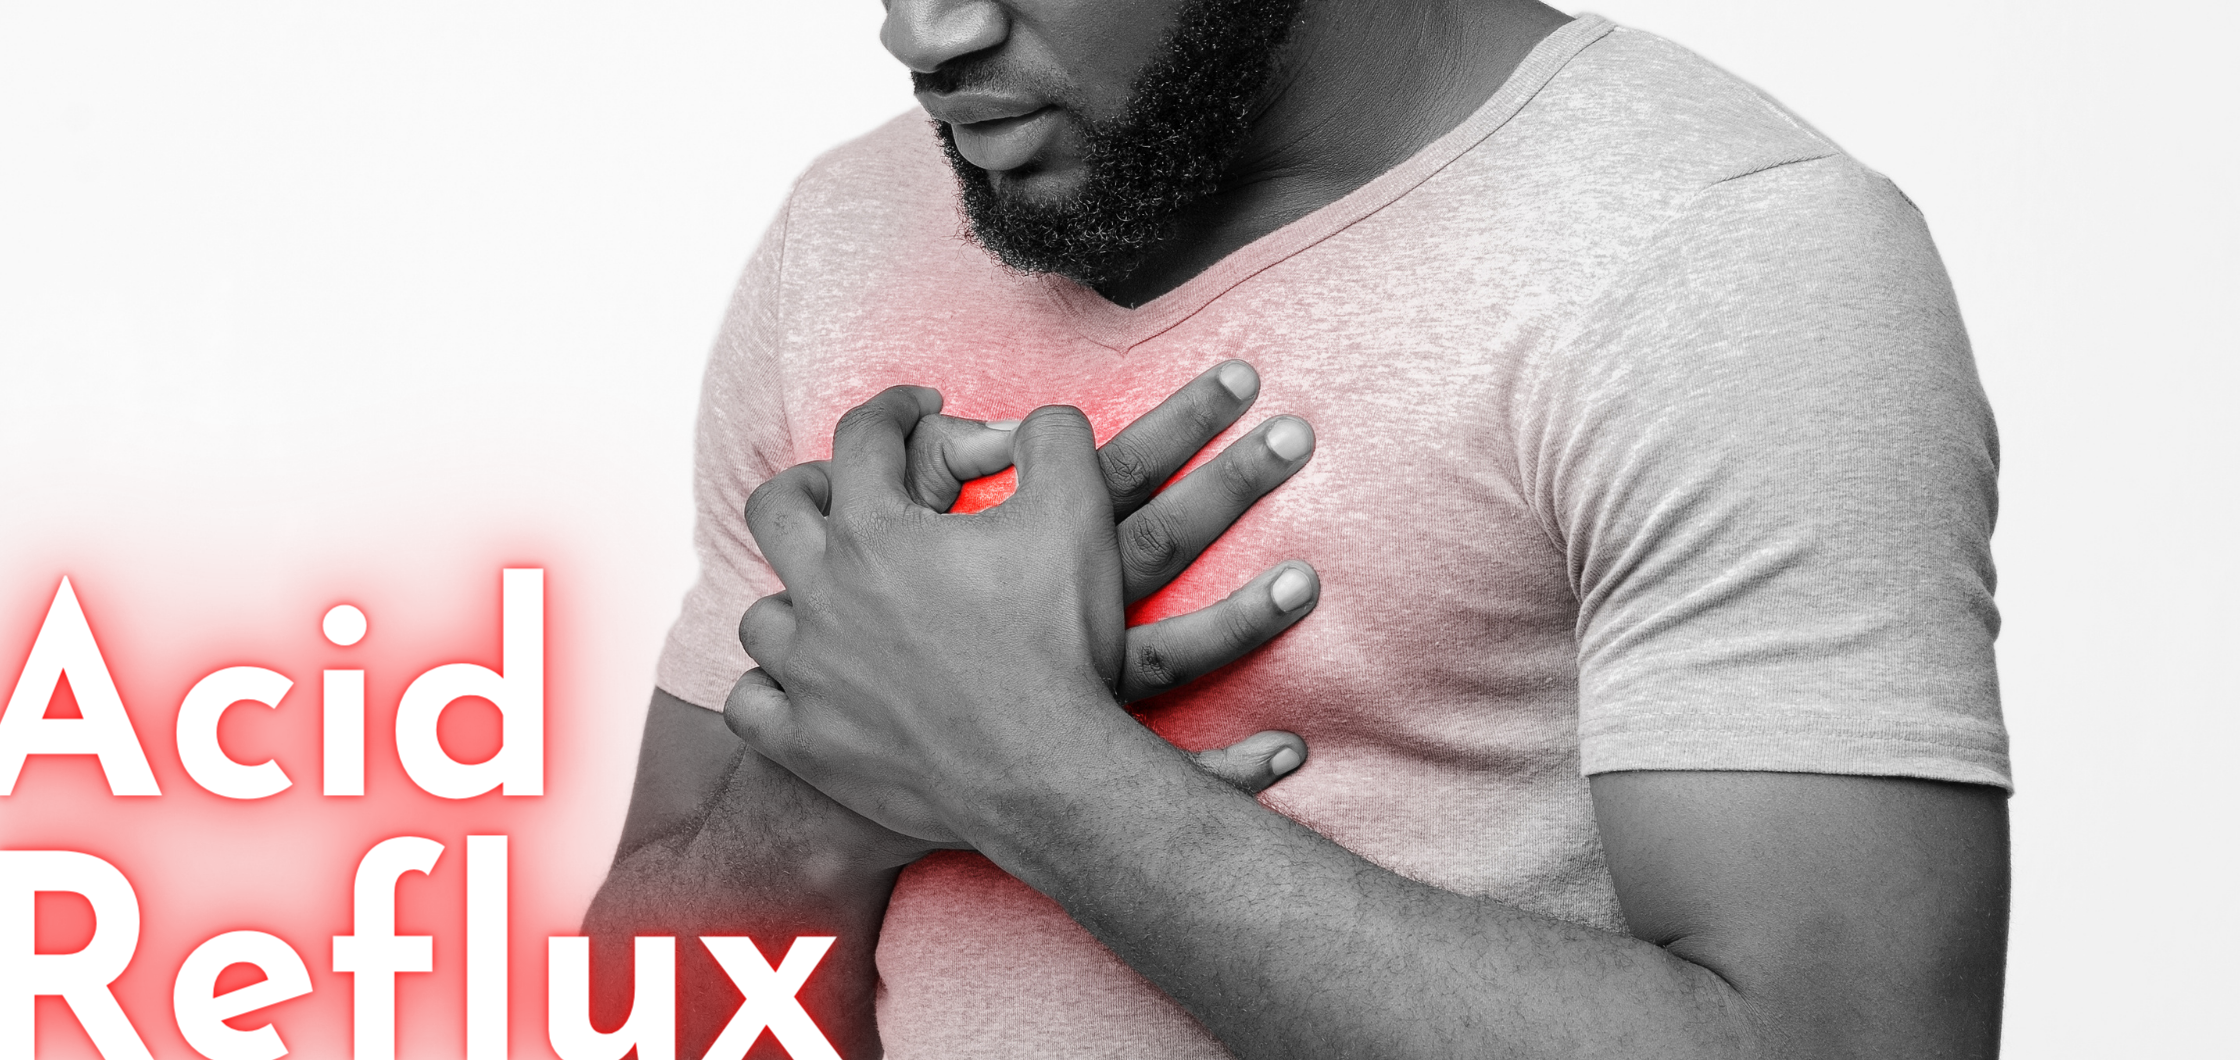 Is your acid reflux acting up?